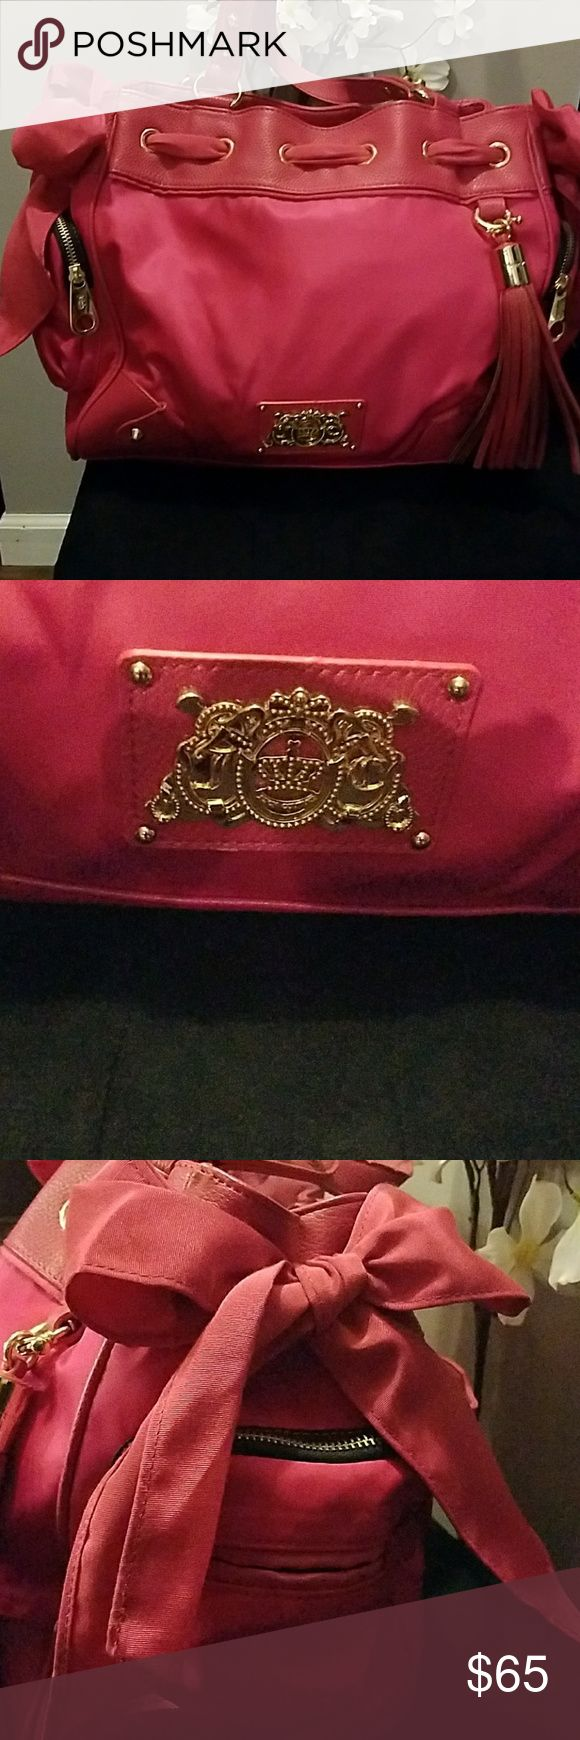 FUCHSIA JUICY COUTURE HANDBAG Authentic juicu couture handbag. Pristine condition. Each side of handbag has side zippers and adorable Bows! Juicy Couture Bags Satchels